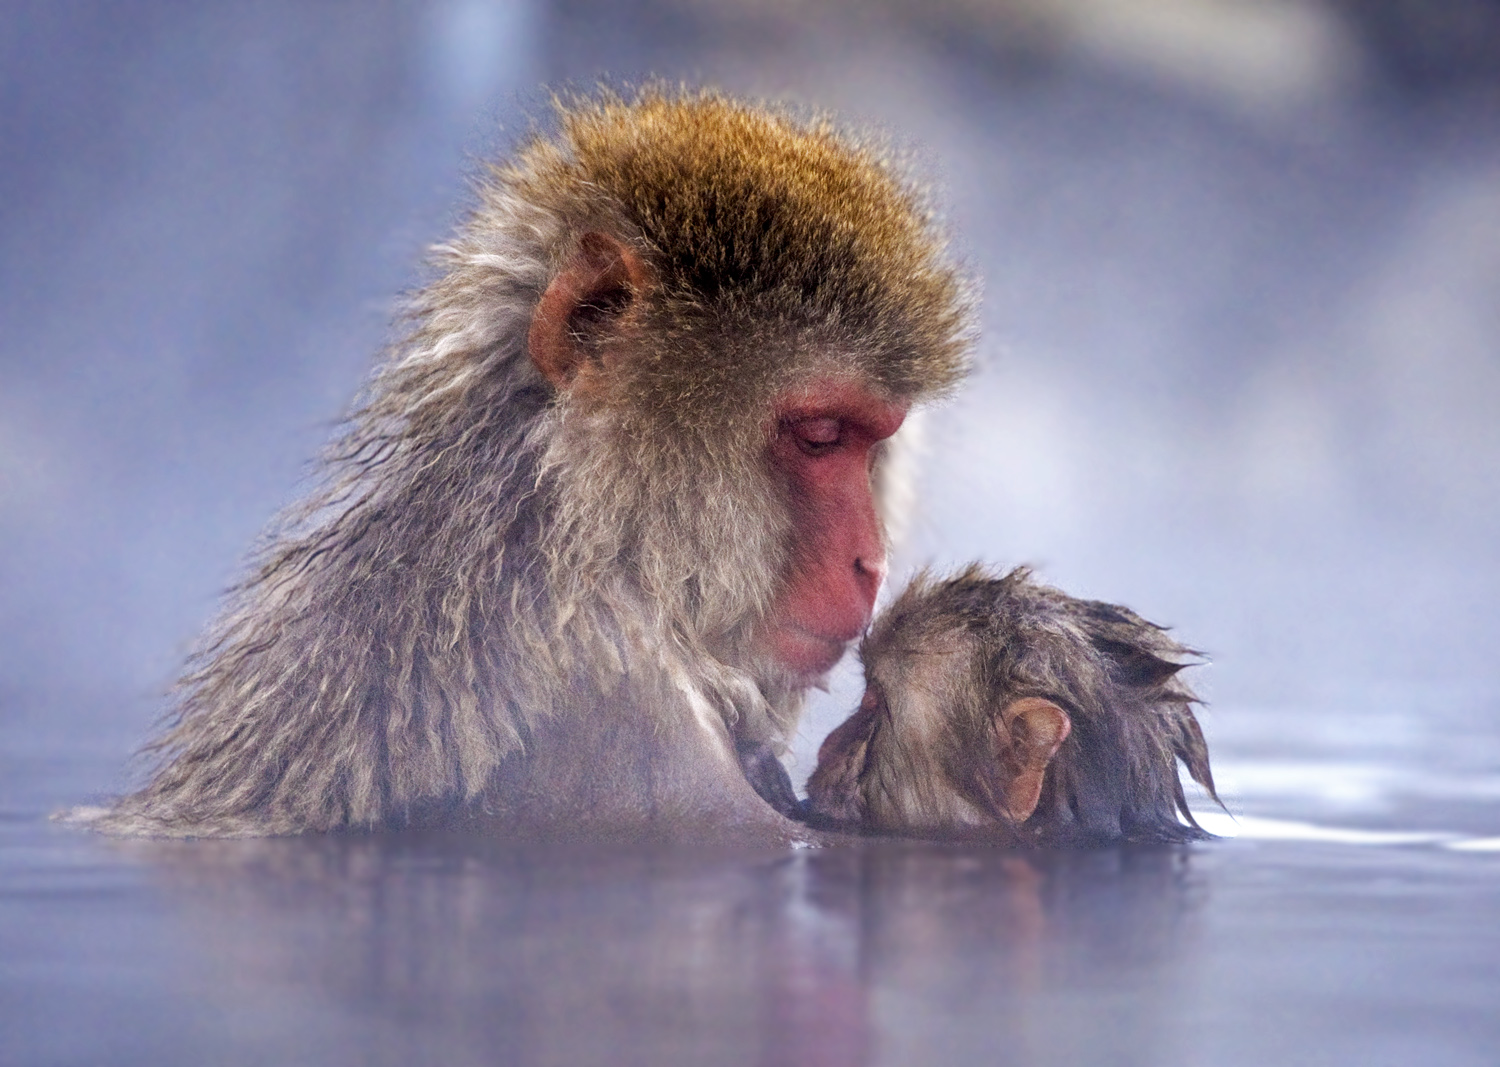 0-7 Steve Mandel_Snow Monkey Mother and Child_Wildlife